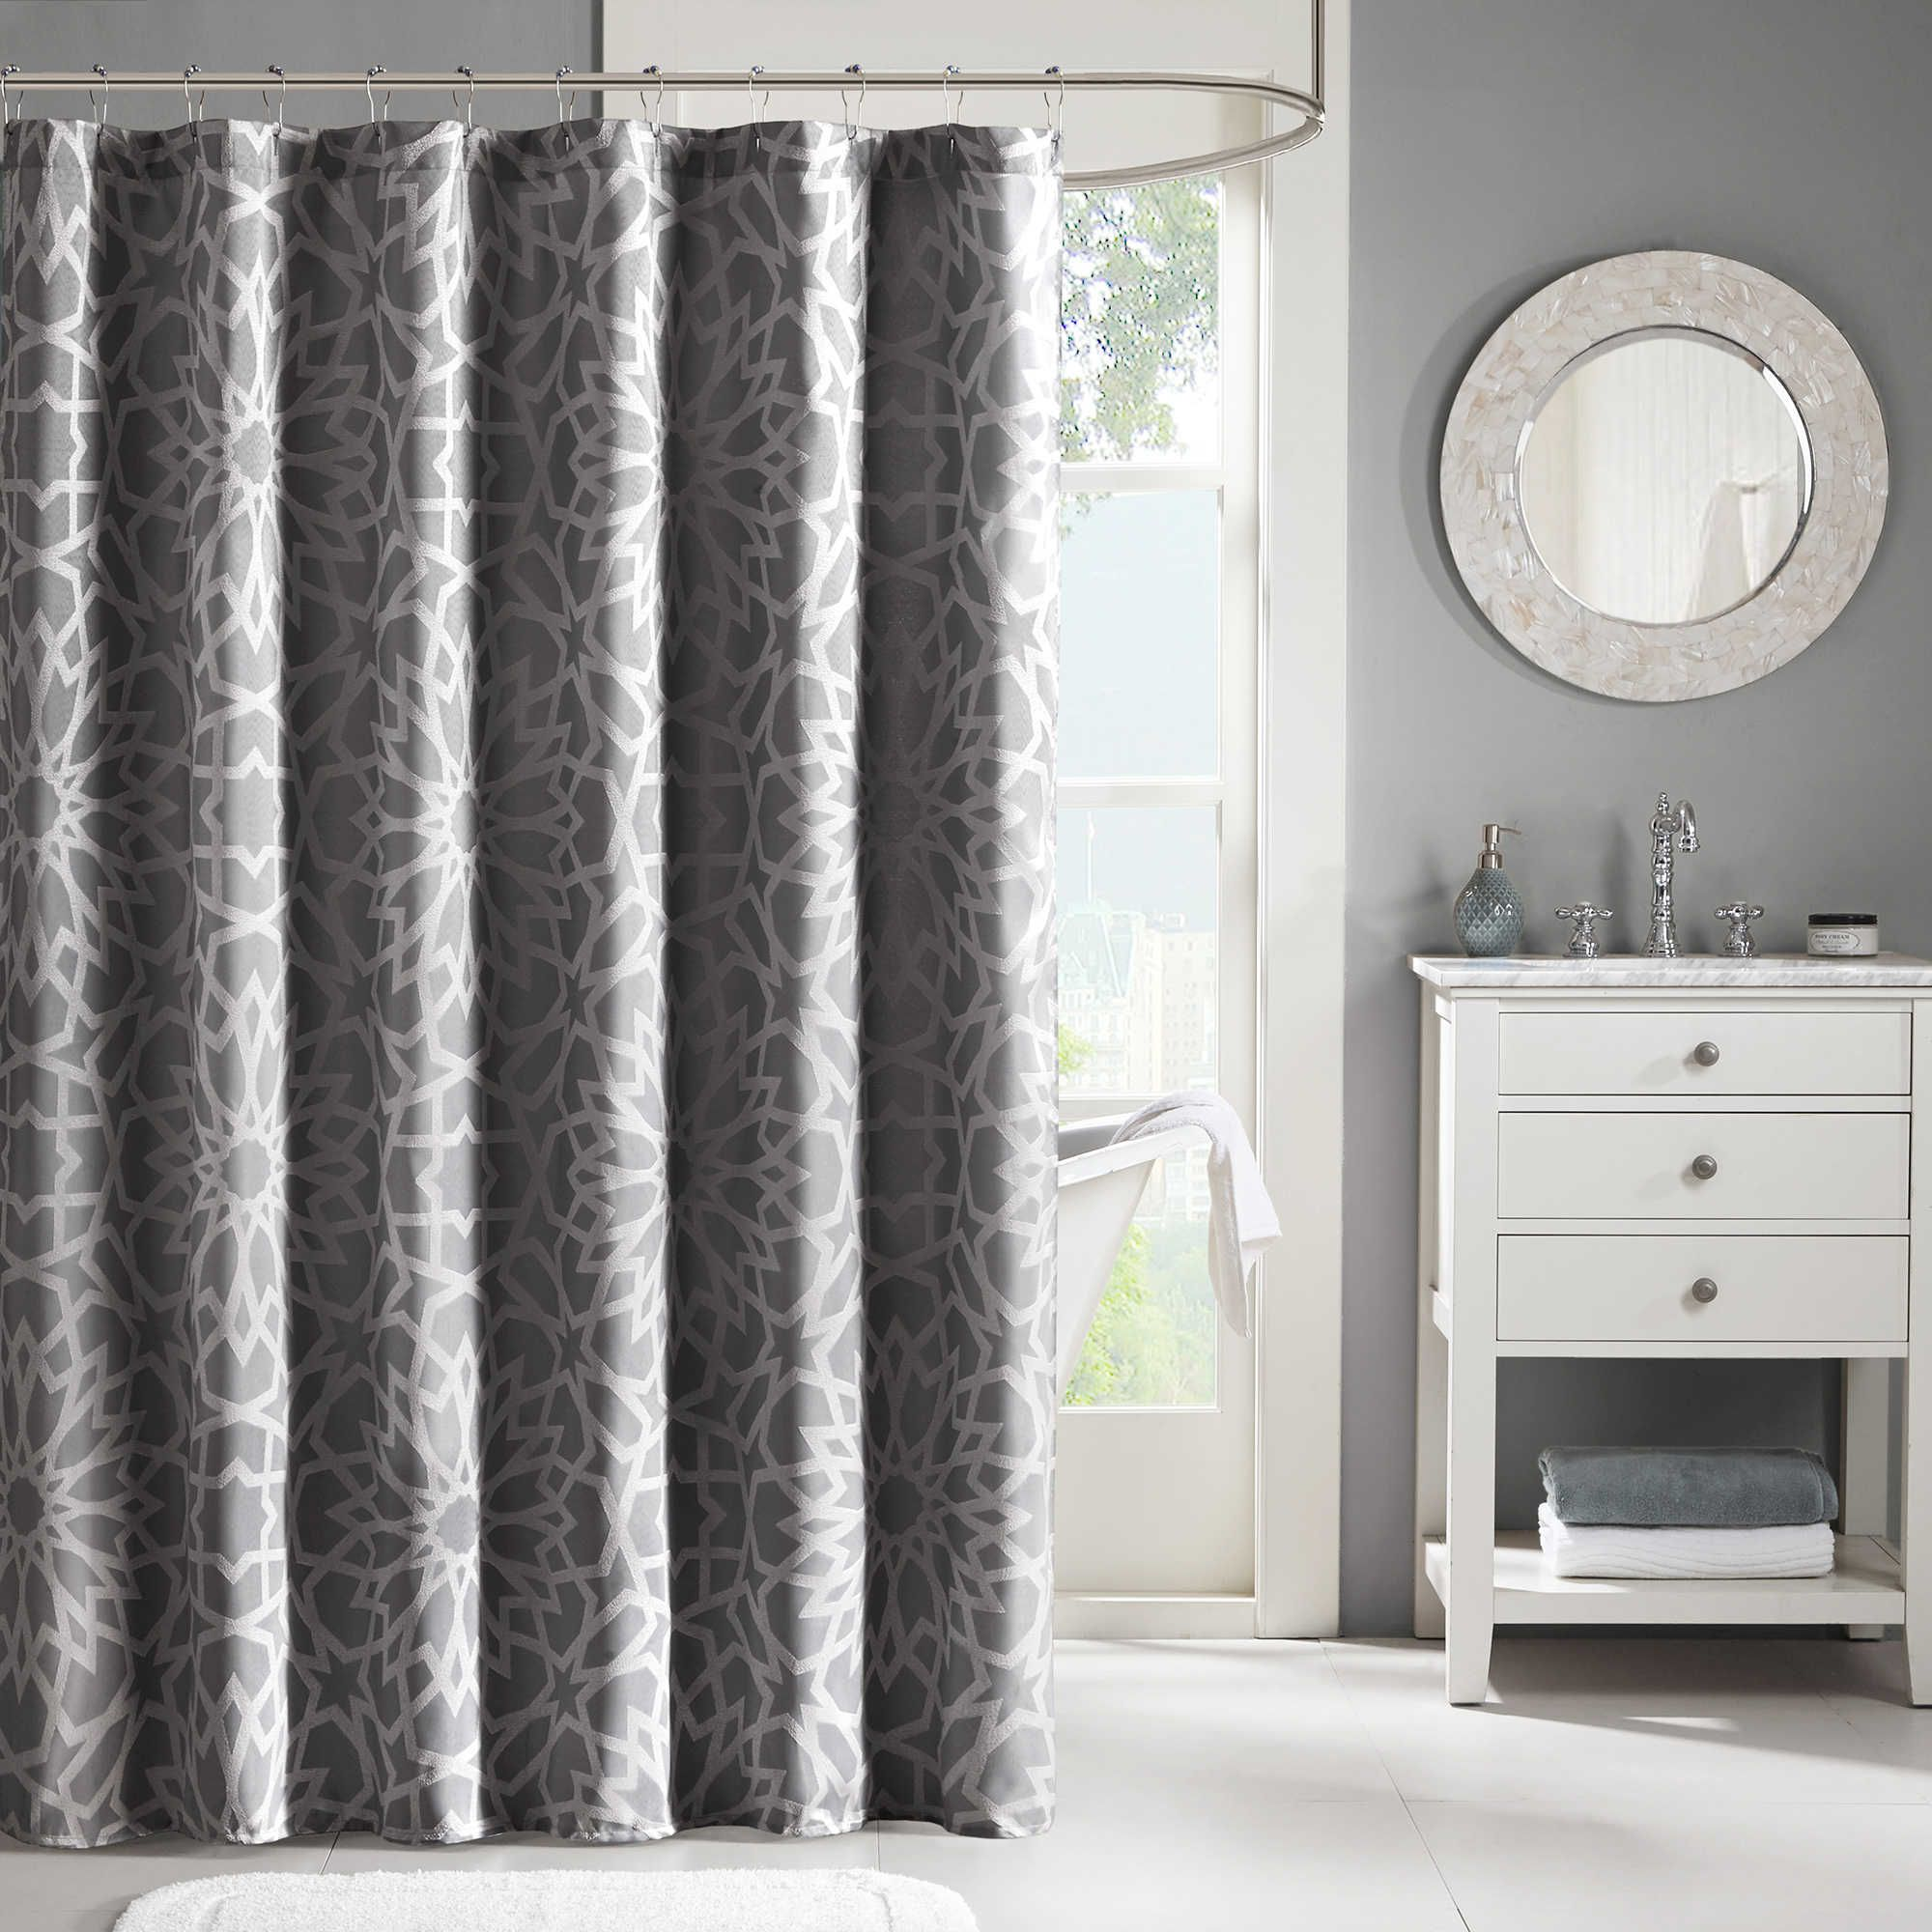 Madison Park Carlow 72 Inch X 72 Inch Jacquard Shower Curtain